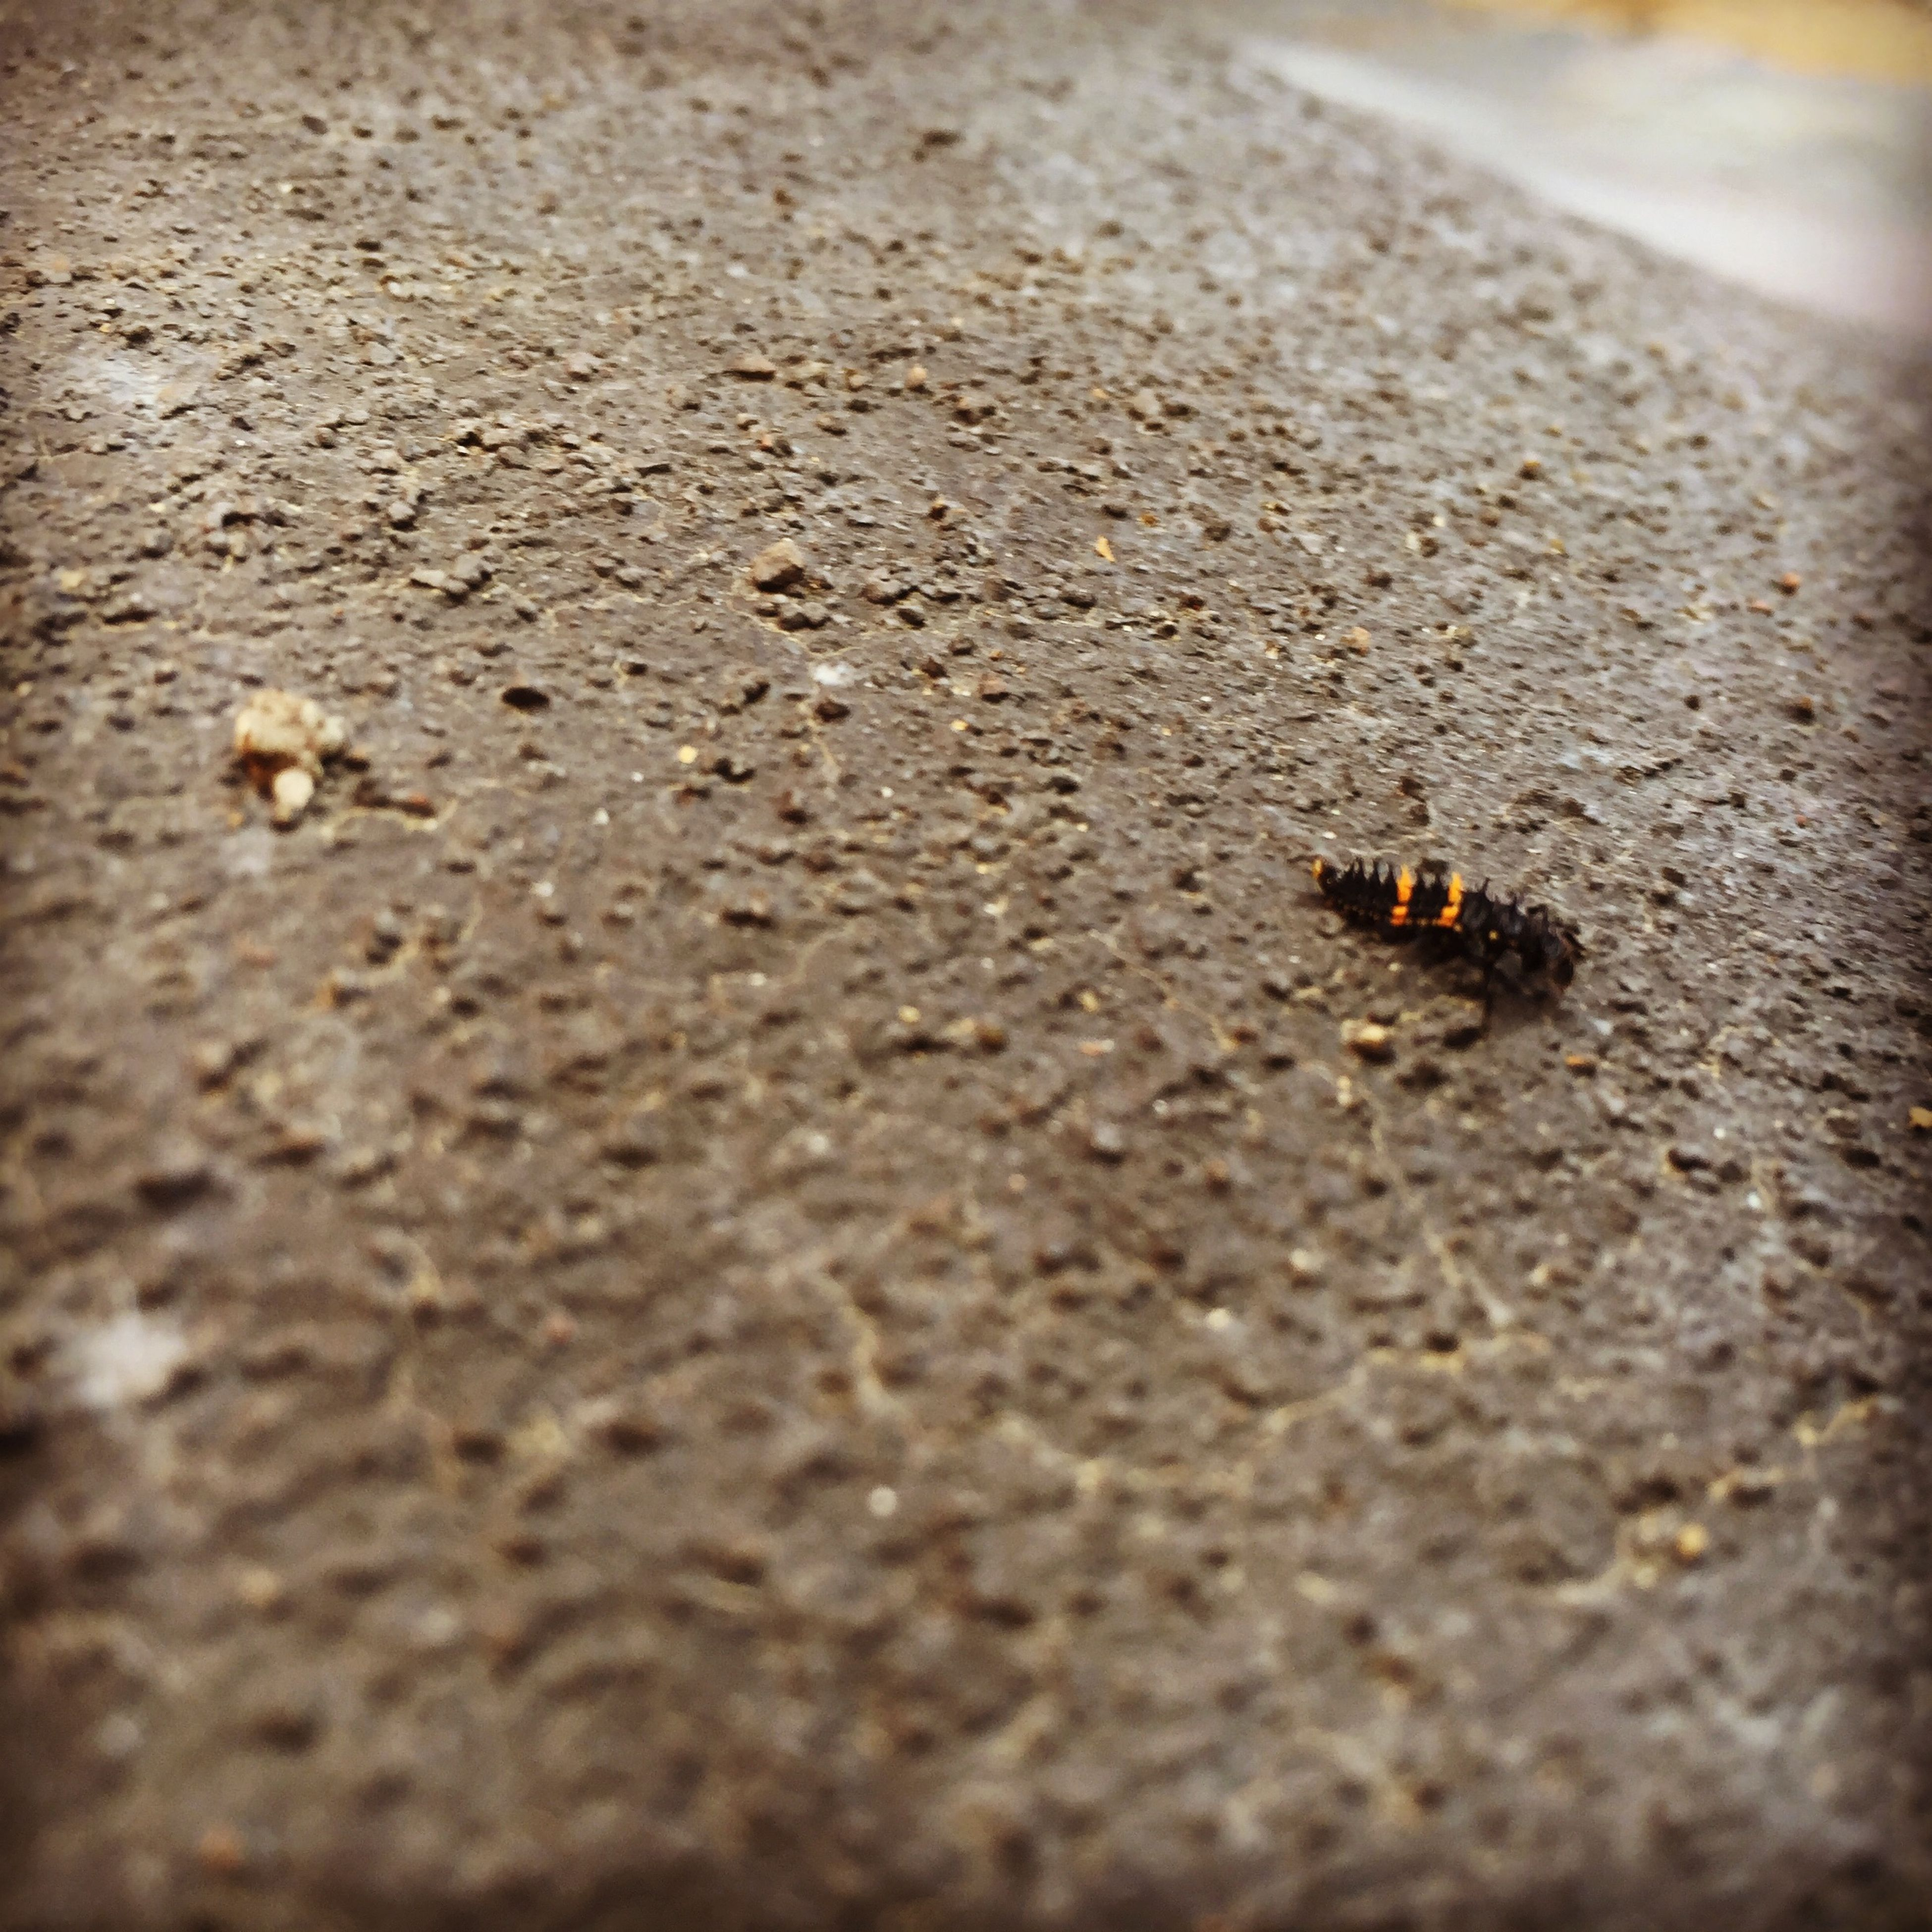 animal themes, insect, one animal, selective focus, animals in the wild, wildlife, high angle view, surface level, street, close-up, road, asphalt, day, textured, outdoors, no people, nature, sand, ant, brown